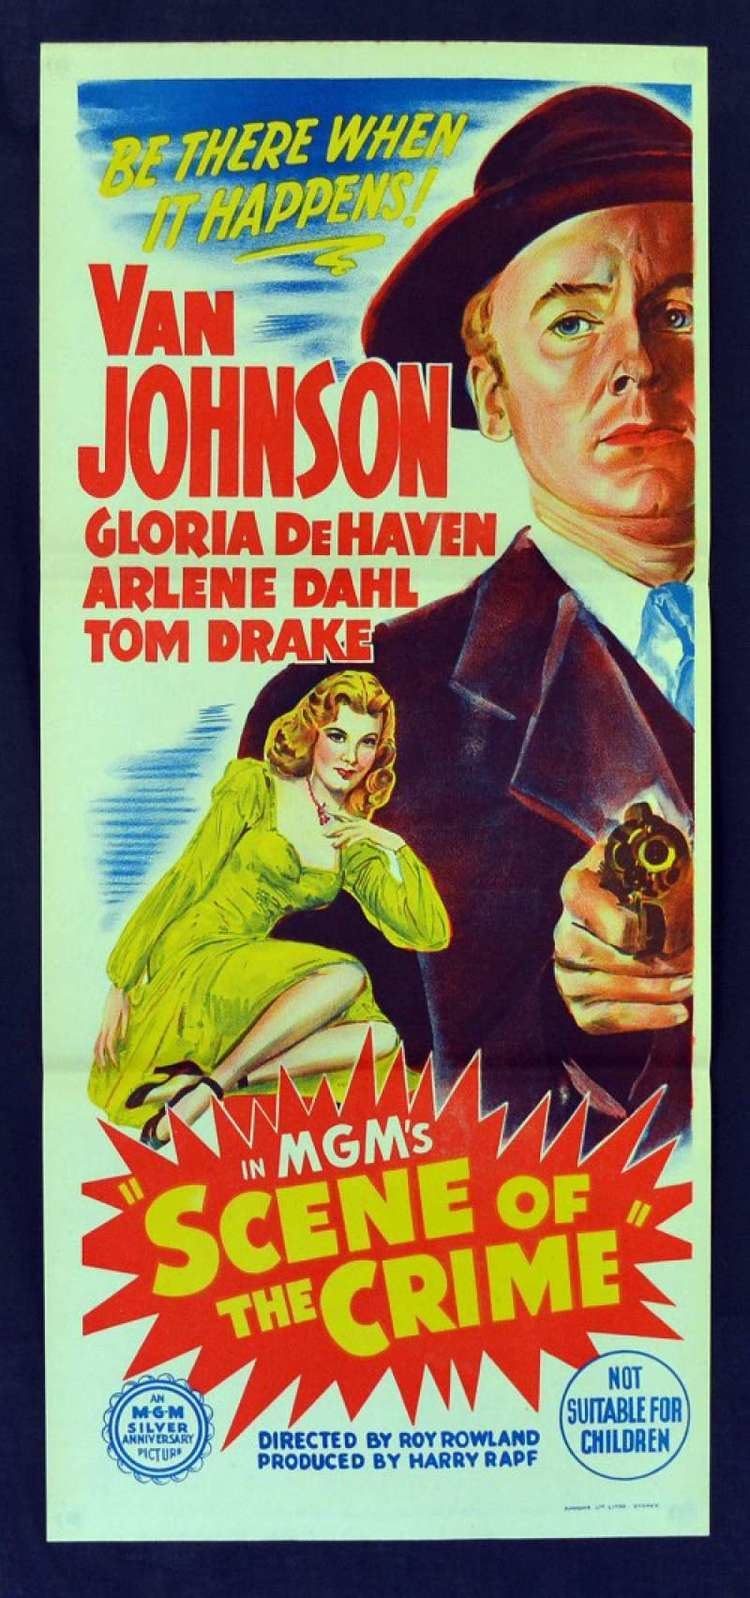 Scene of the Crime (1949 film) All About Movies Scene Of The Crime 1949 Daybill movie poster Film